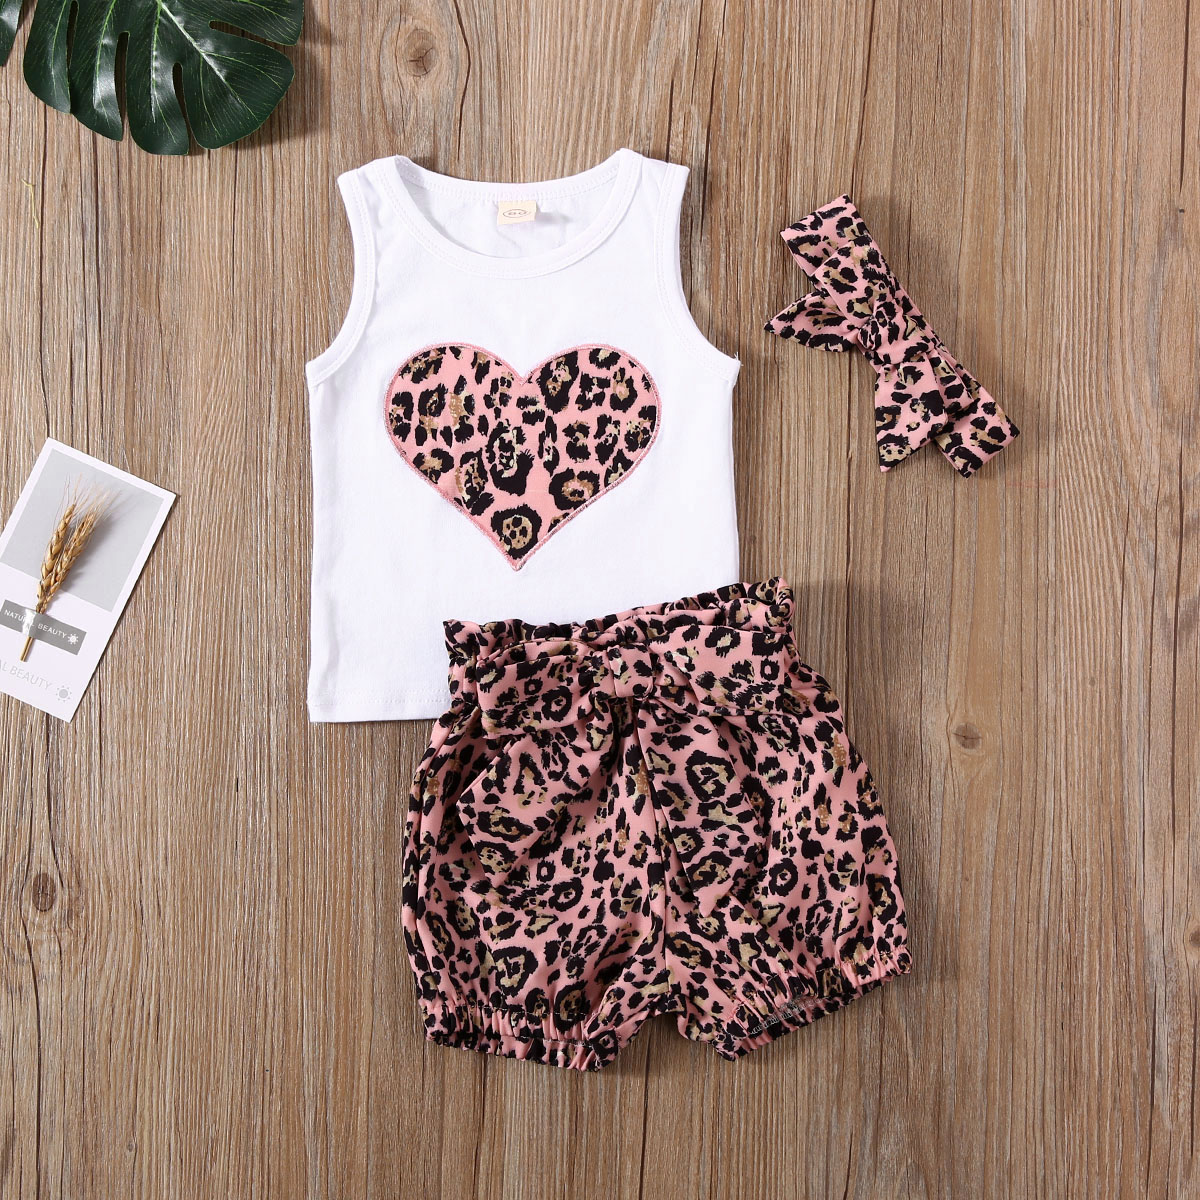 Emmababy Newborn Baby Girl Clothes Summer Leopard Print Peach Heart Sleeveless Tops Short Pants Headband 3Pcs Outfits Sunsuit